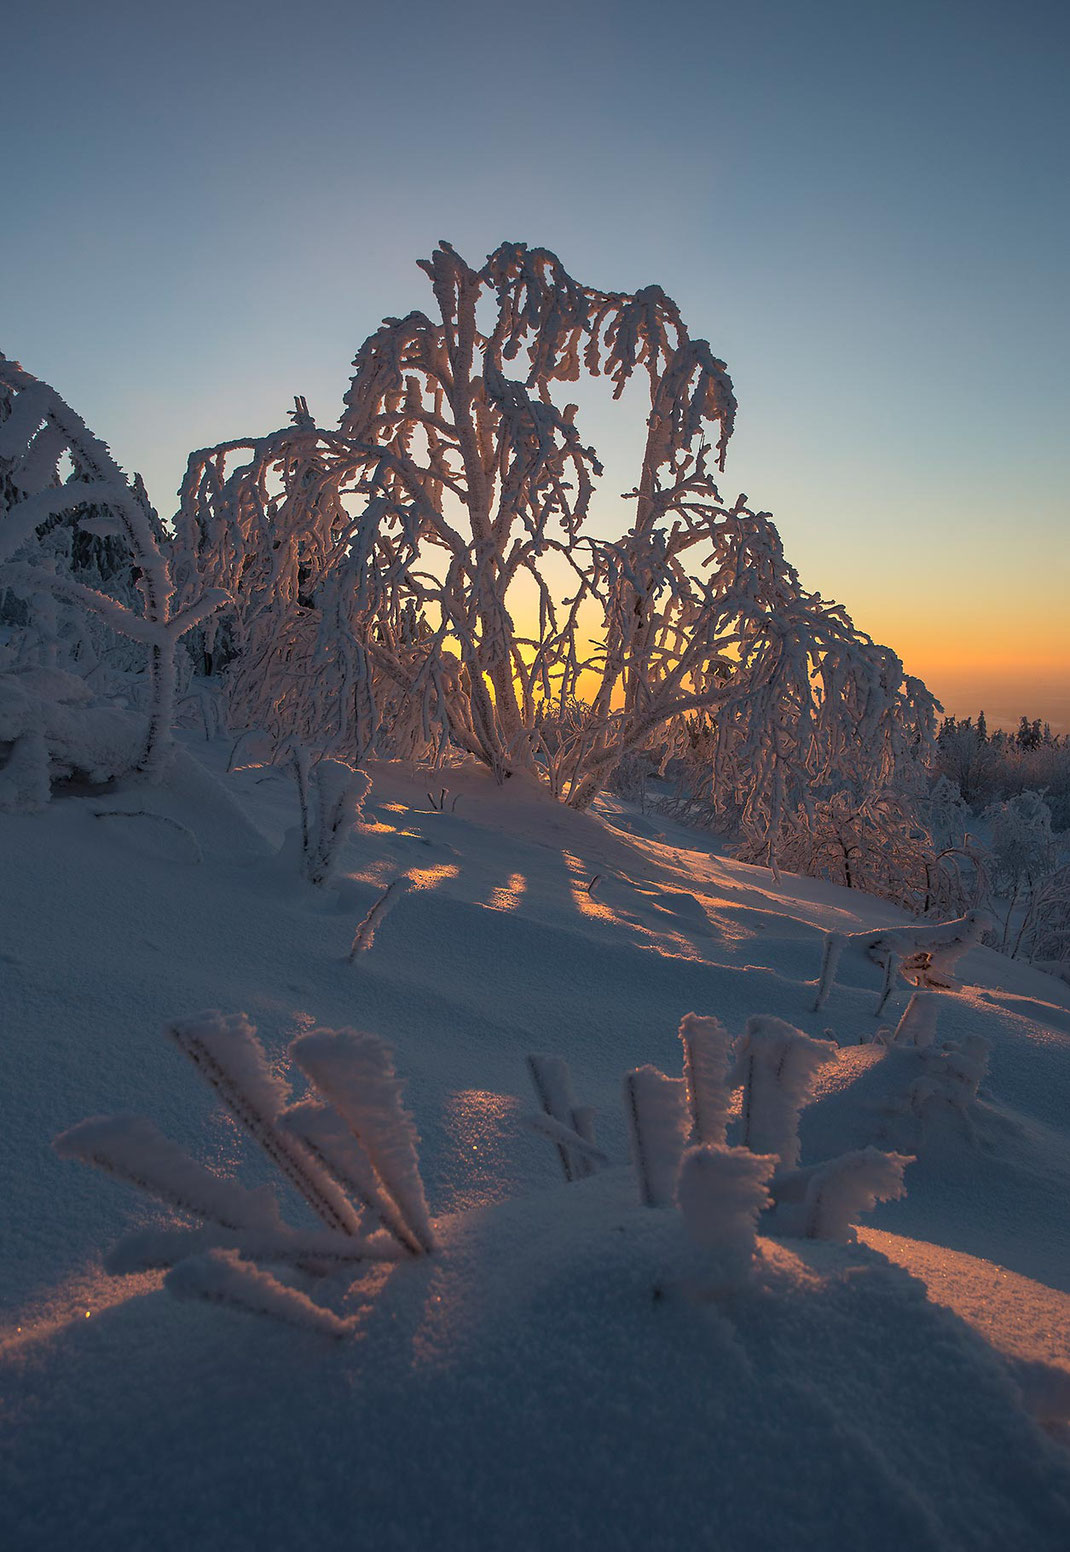 Orange sunset through frozen icy trees with beautiful snow crystals, Taunus mountains, Hessen, Germany